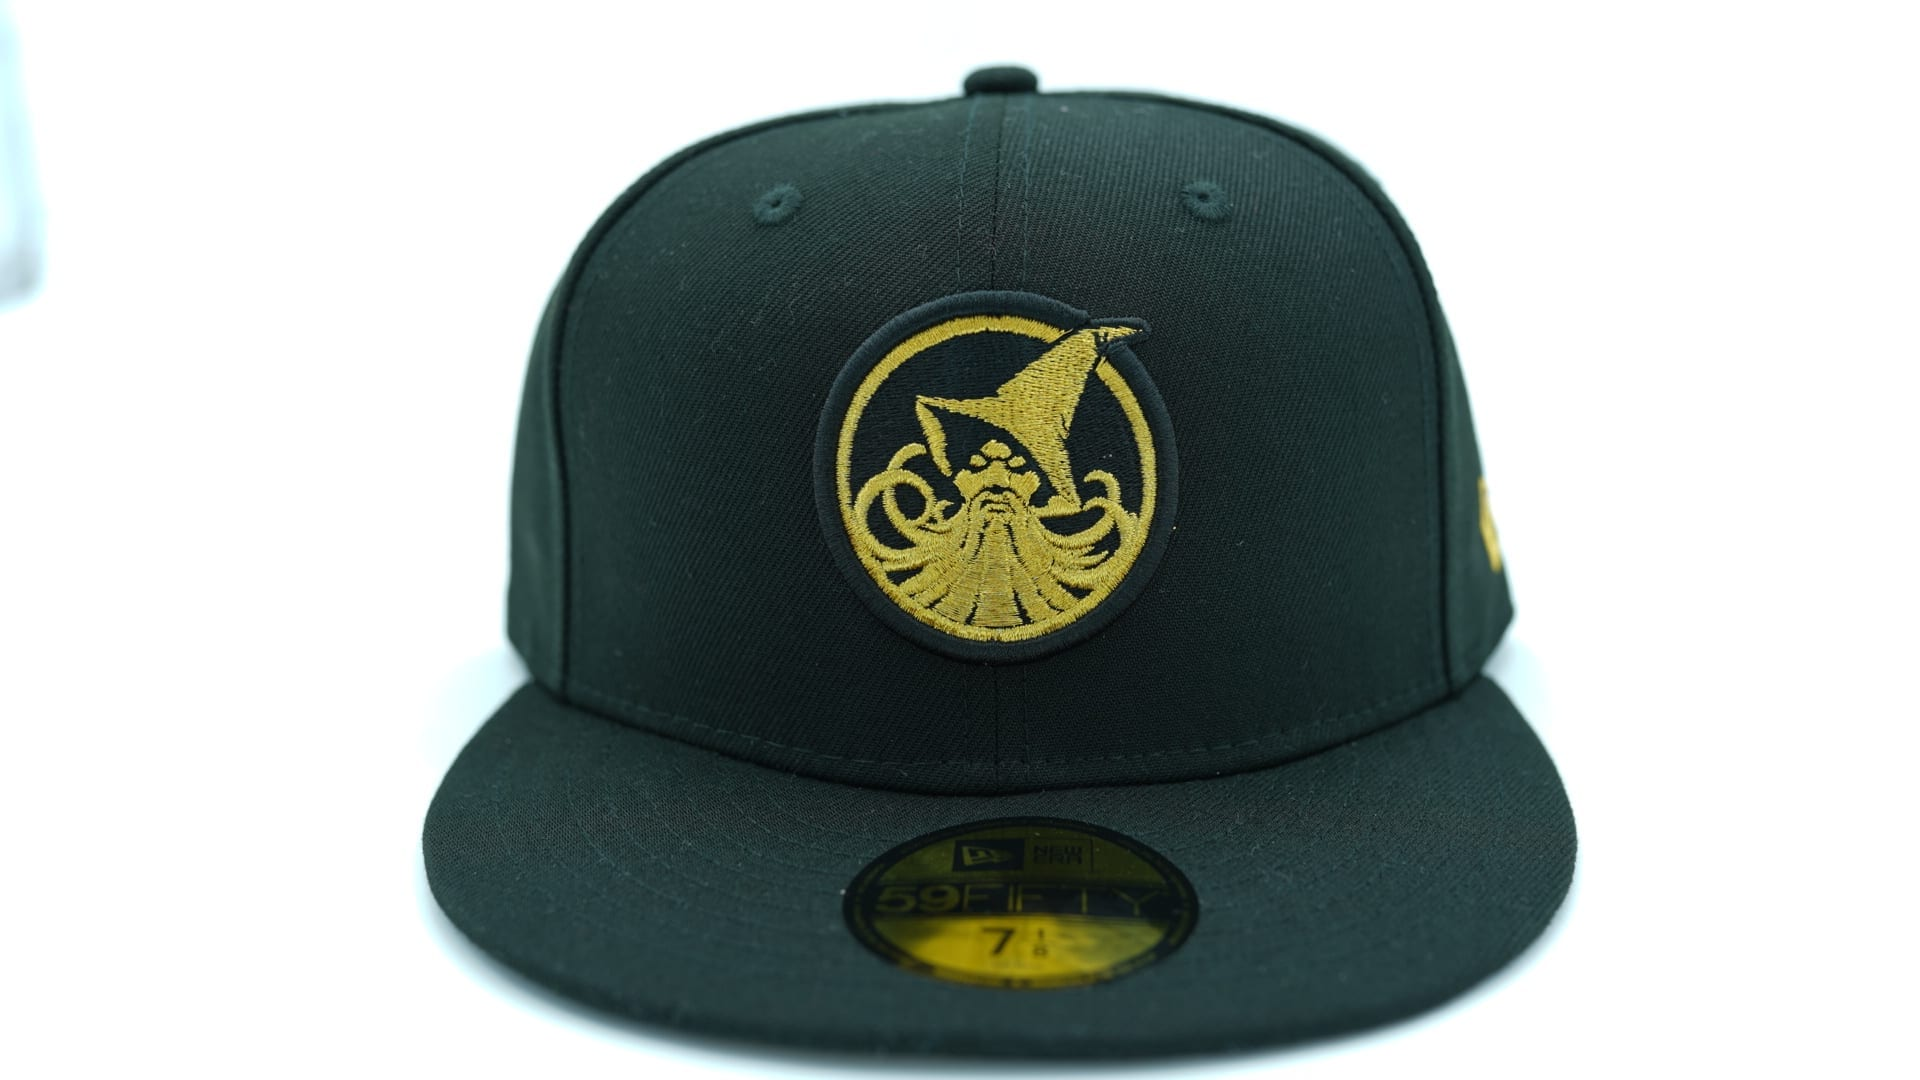 Roc Nation x MLB x NEW ERA Black 59Fifty Fitted Cap Collection PREVIEW